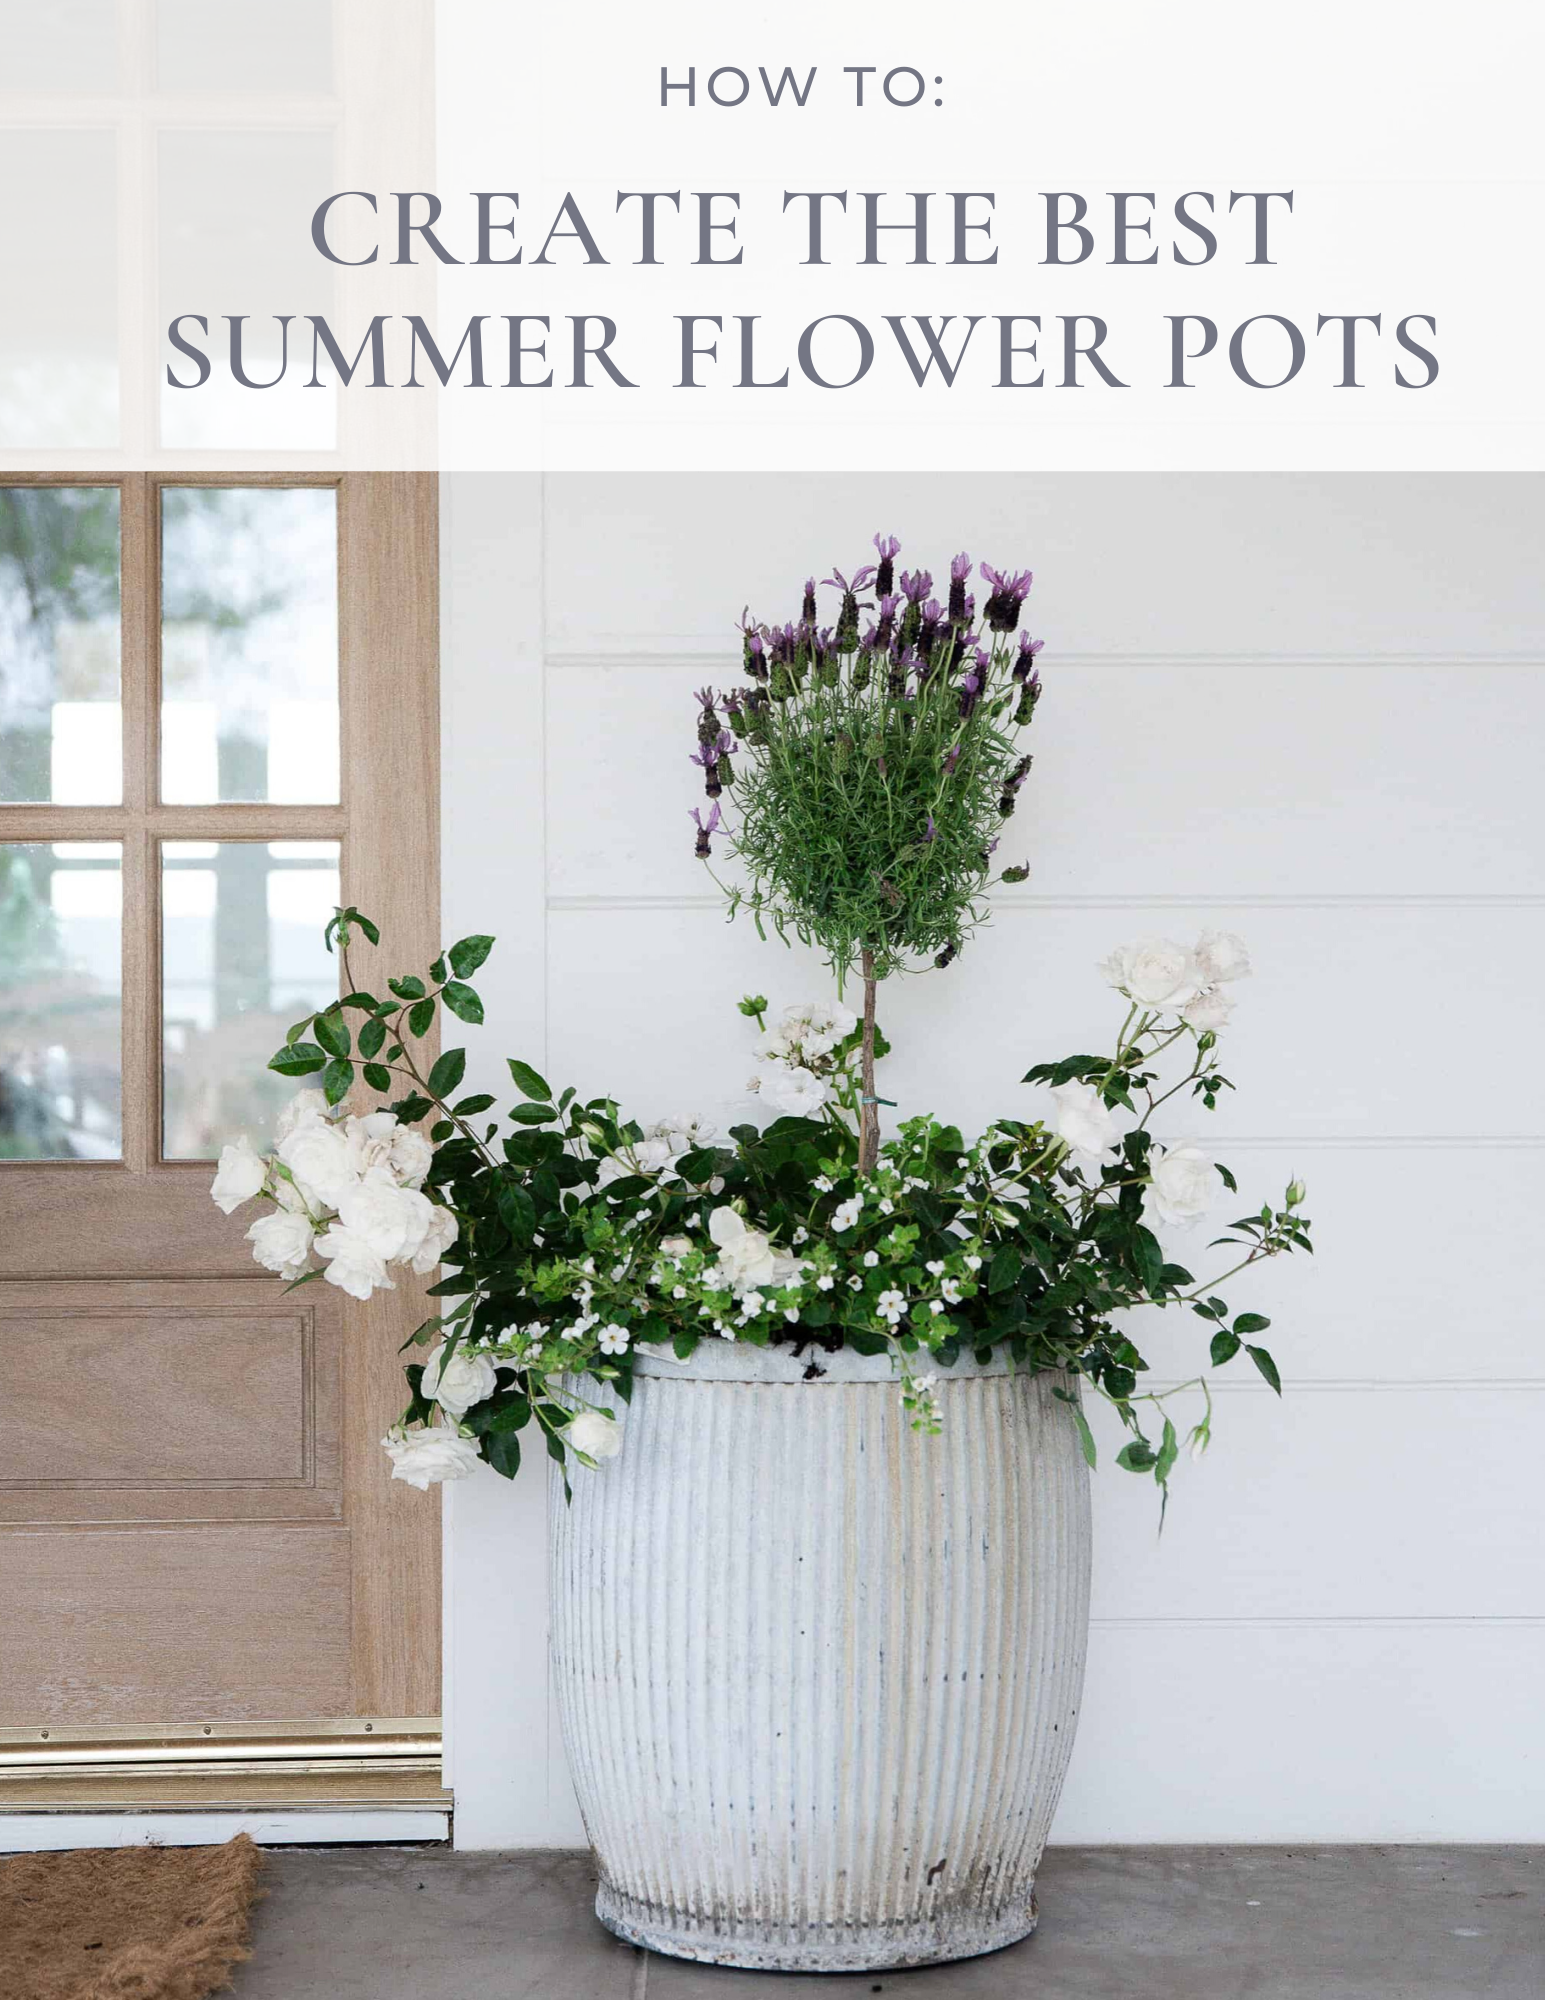 The Best Ideas For Creating Stunning Summer Flower Pots In 2020 Flower Pots Summer Flowers Flowers